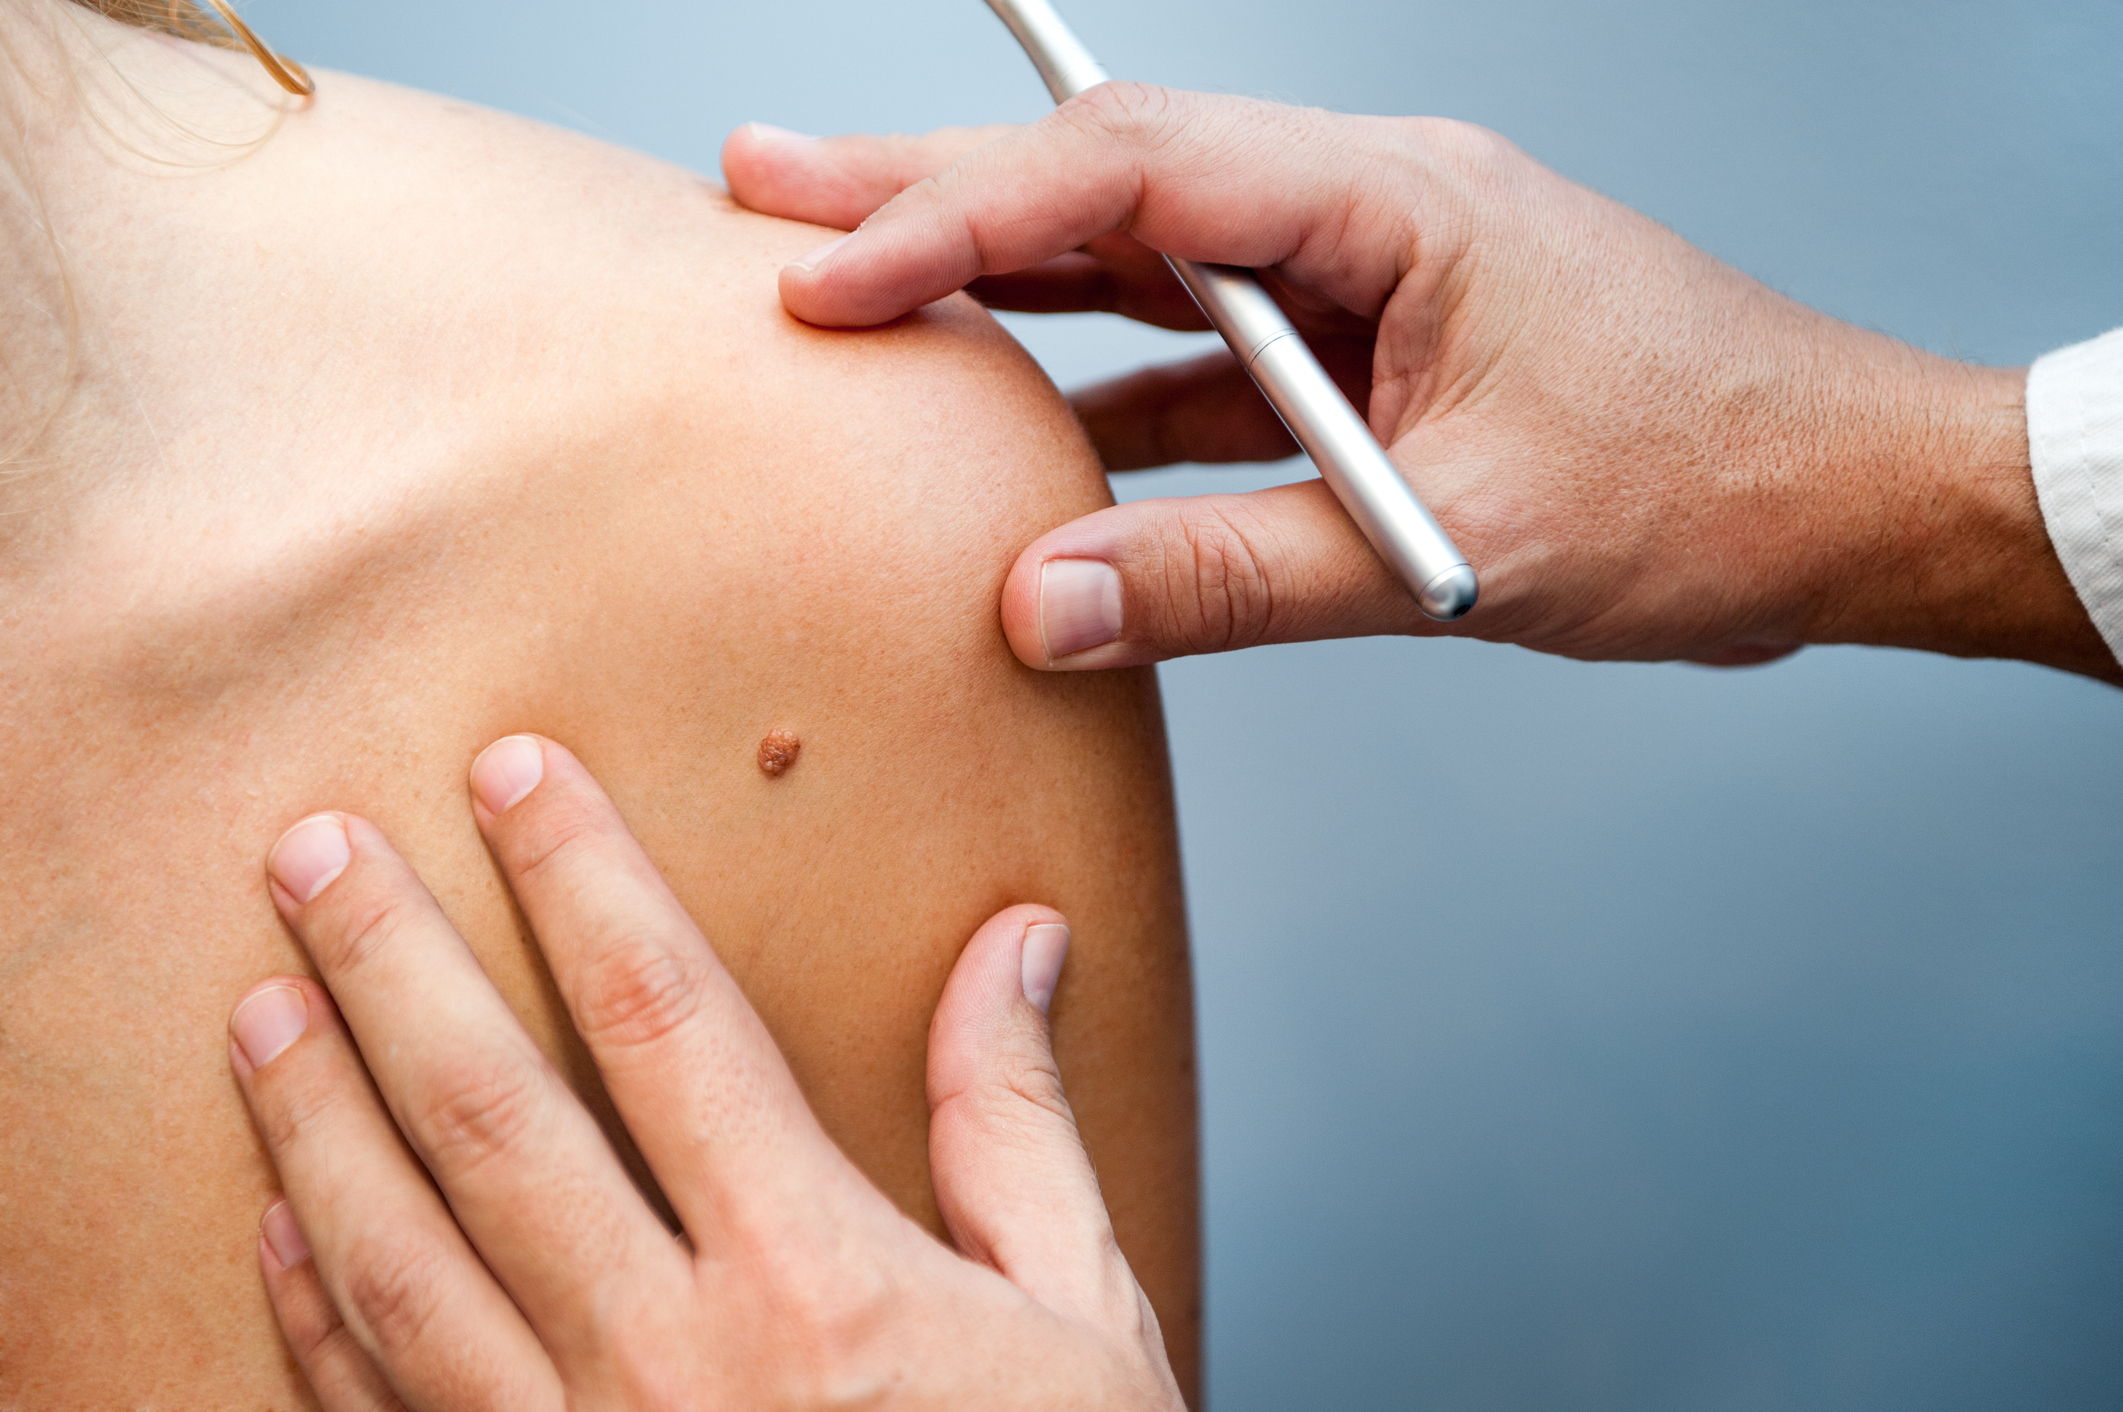 Have You Had a Skin Checkup Lately?